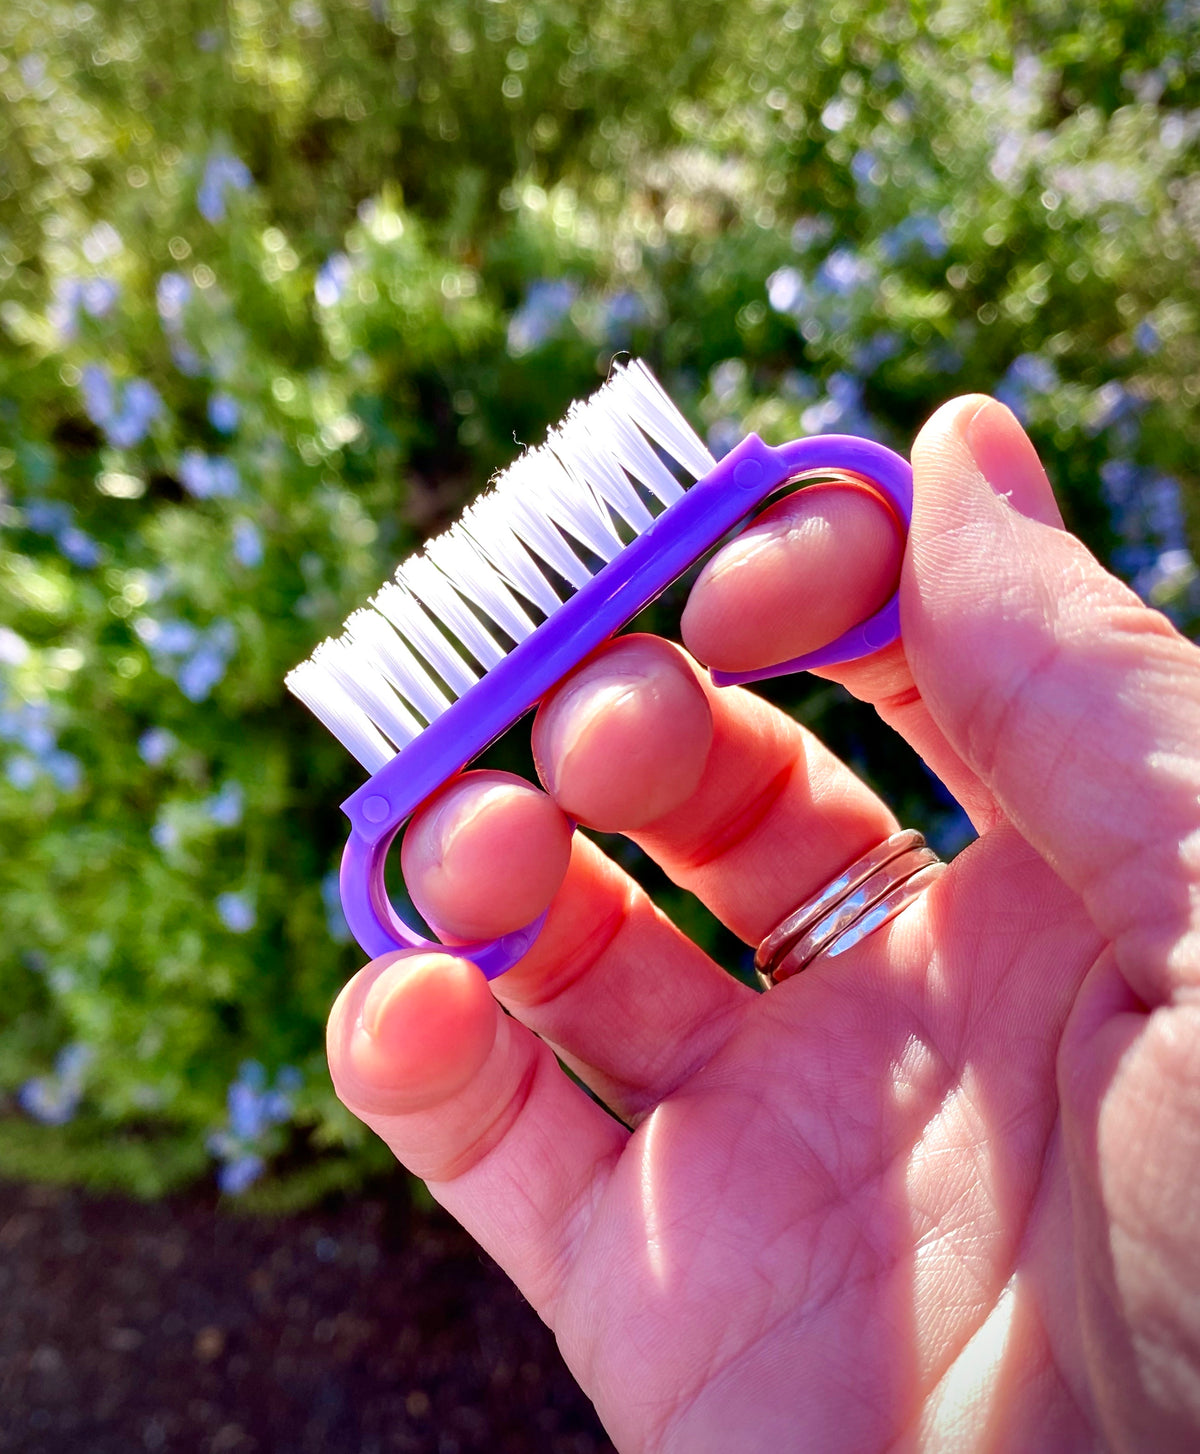 Nail & Hand Cleaning Brush - Emz Blendz